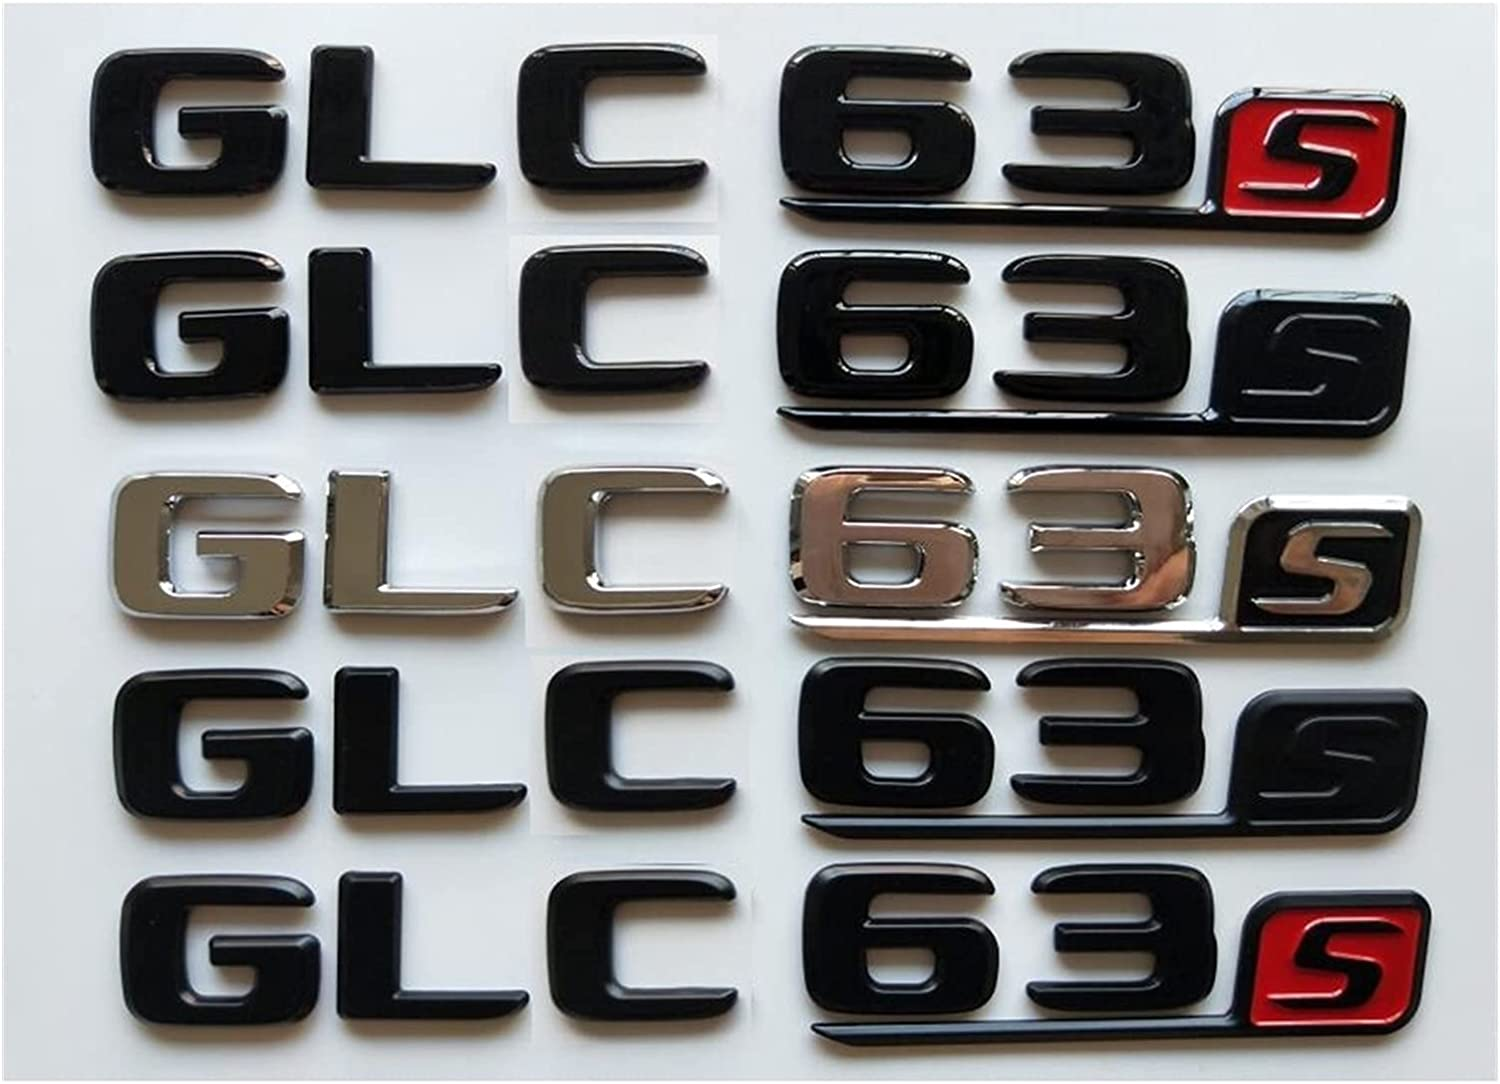 SHIWANGLIN Max 67% OFF Chrome Black Letters free shipping Number Trunk Embl Badges Emblems